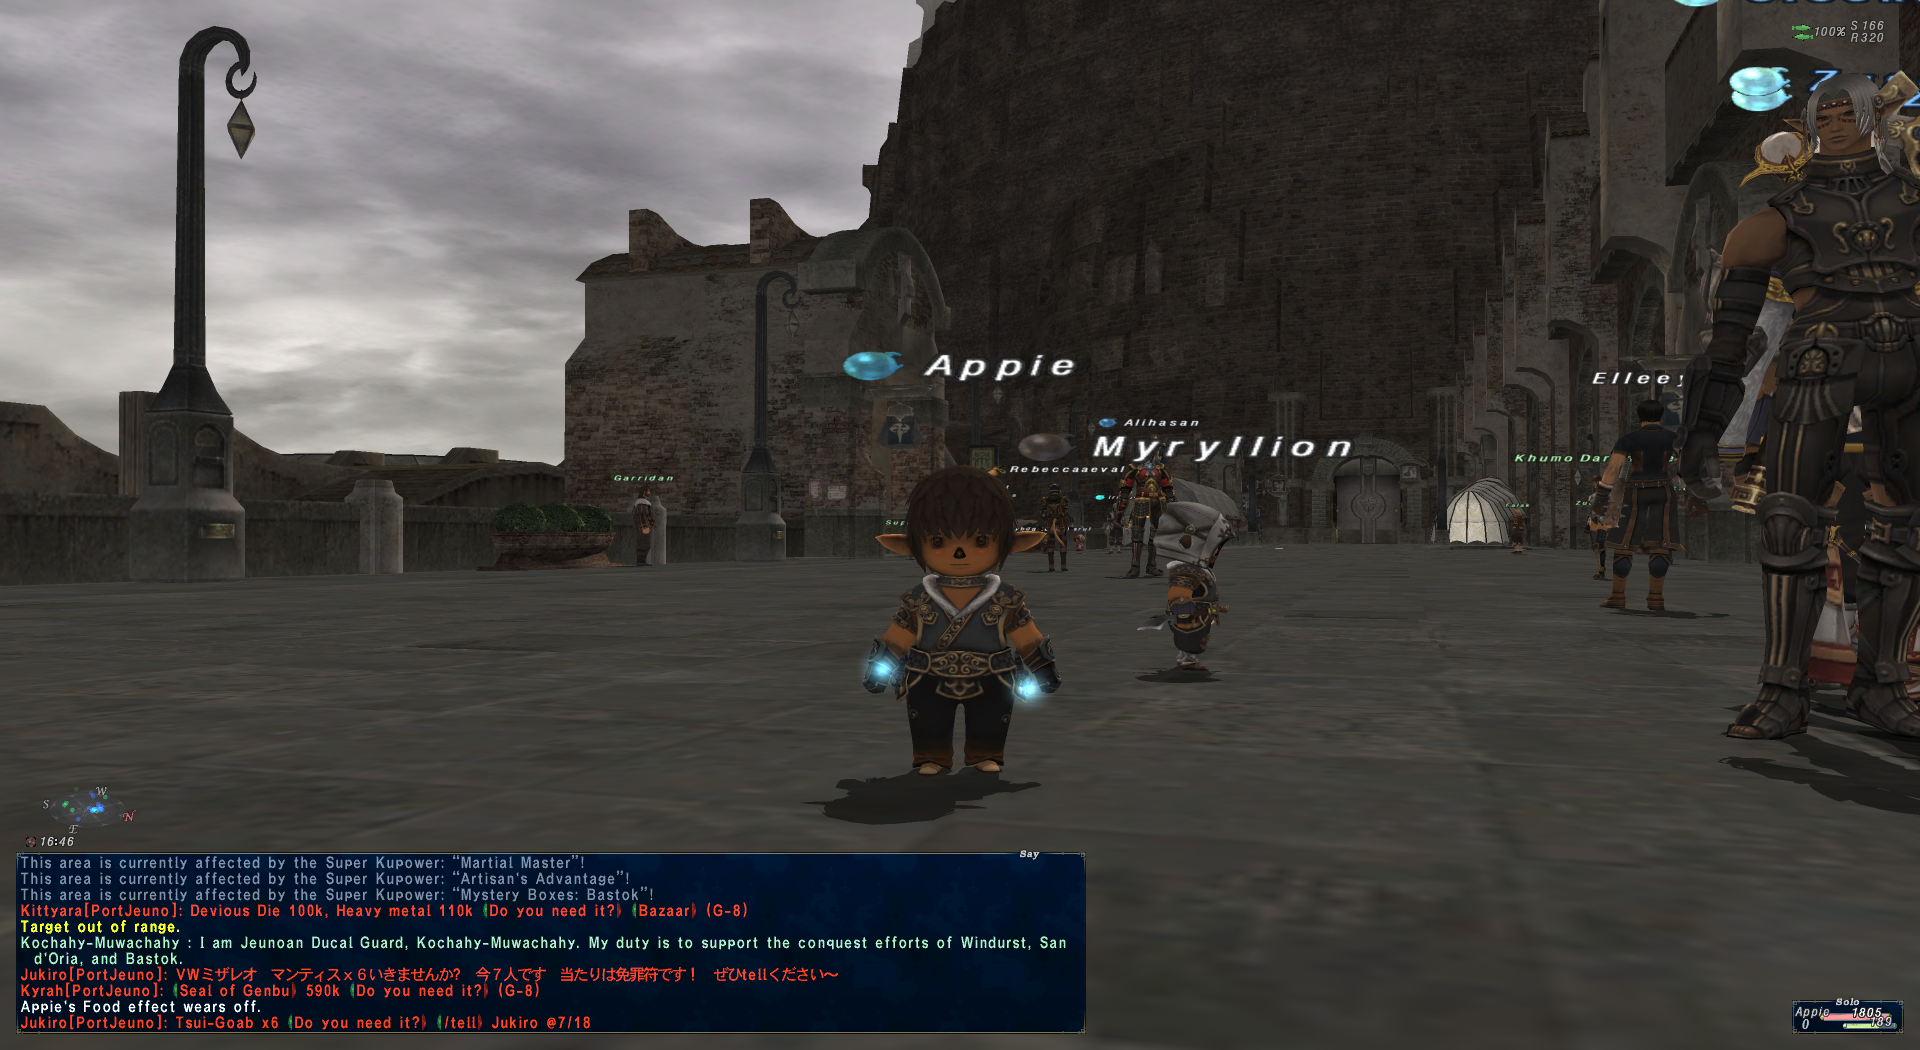 appie ffxi have some mithra head issues because costumes dats those problem body with side pieces separate items happen mostly legs never hands feet since about sure client server moment fixing this tell happens that anybody race took clipping horrid pictures from viewer altana seem identify help anyone issue them full using